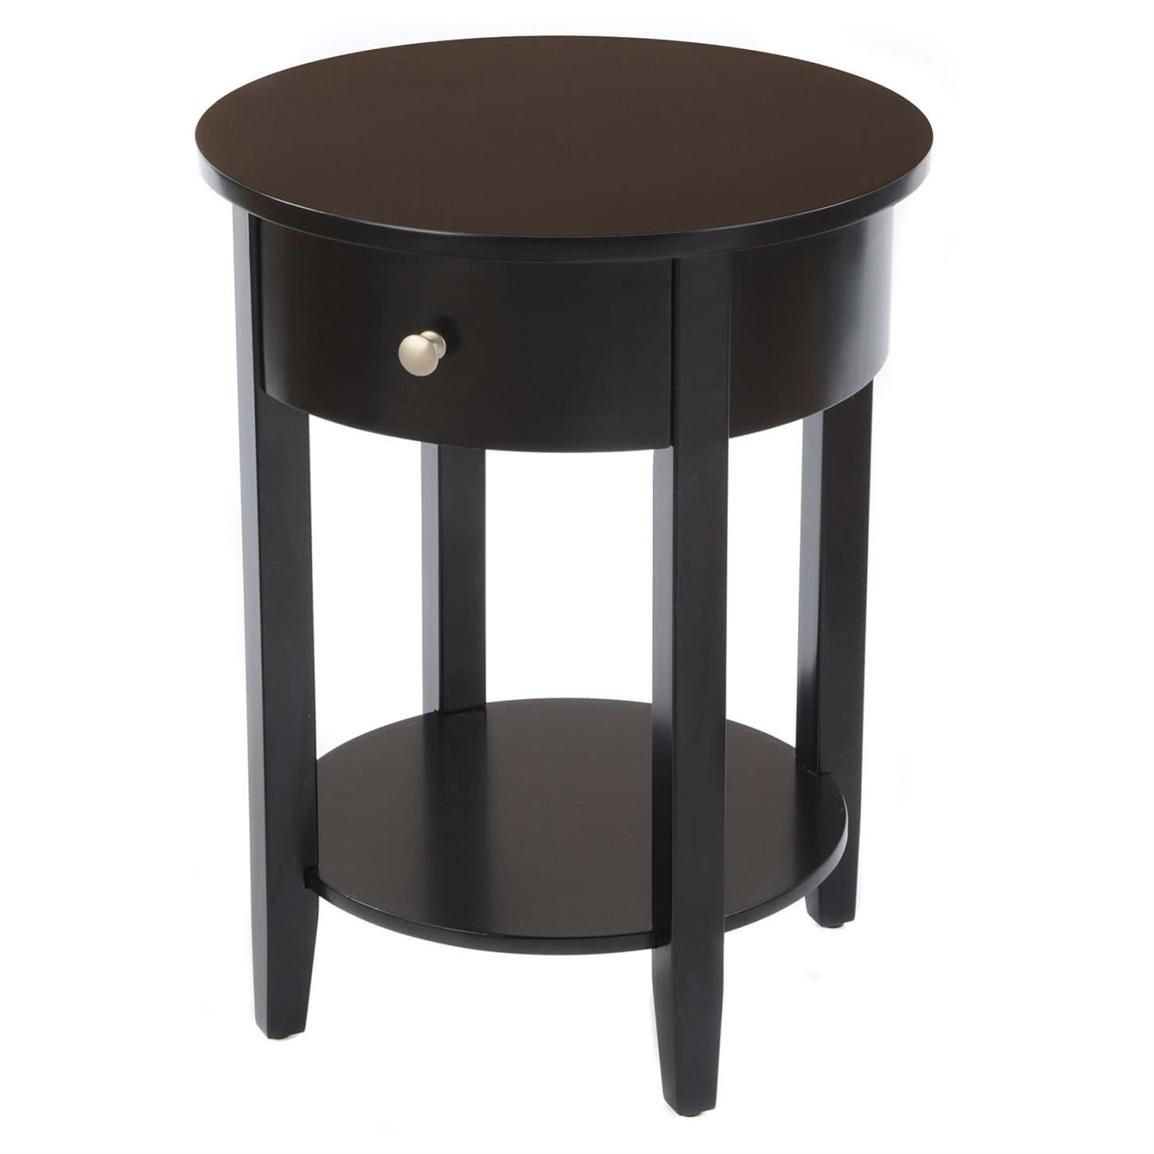 Placement Of Side Tables For Living Room Anlamli Net In 2020 Side Table With Drawer Side Table Round Side Table #side #tables #with #drawers #for #living #room